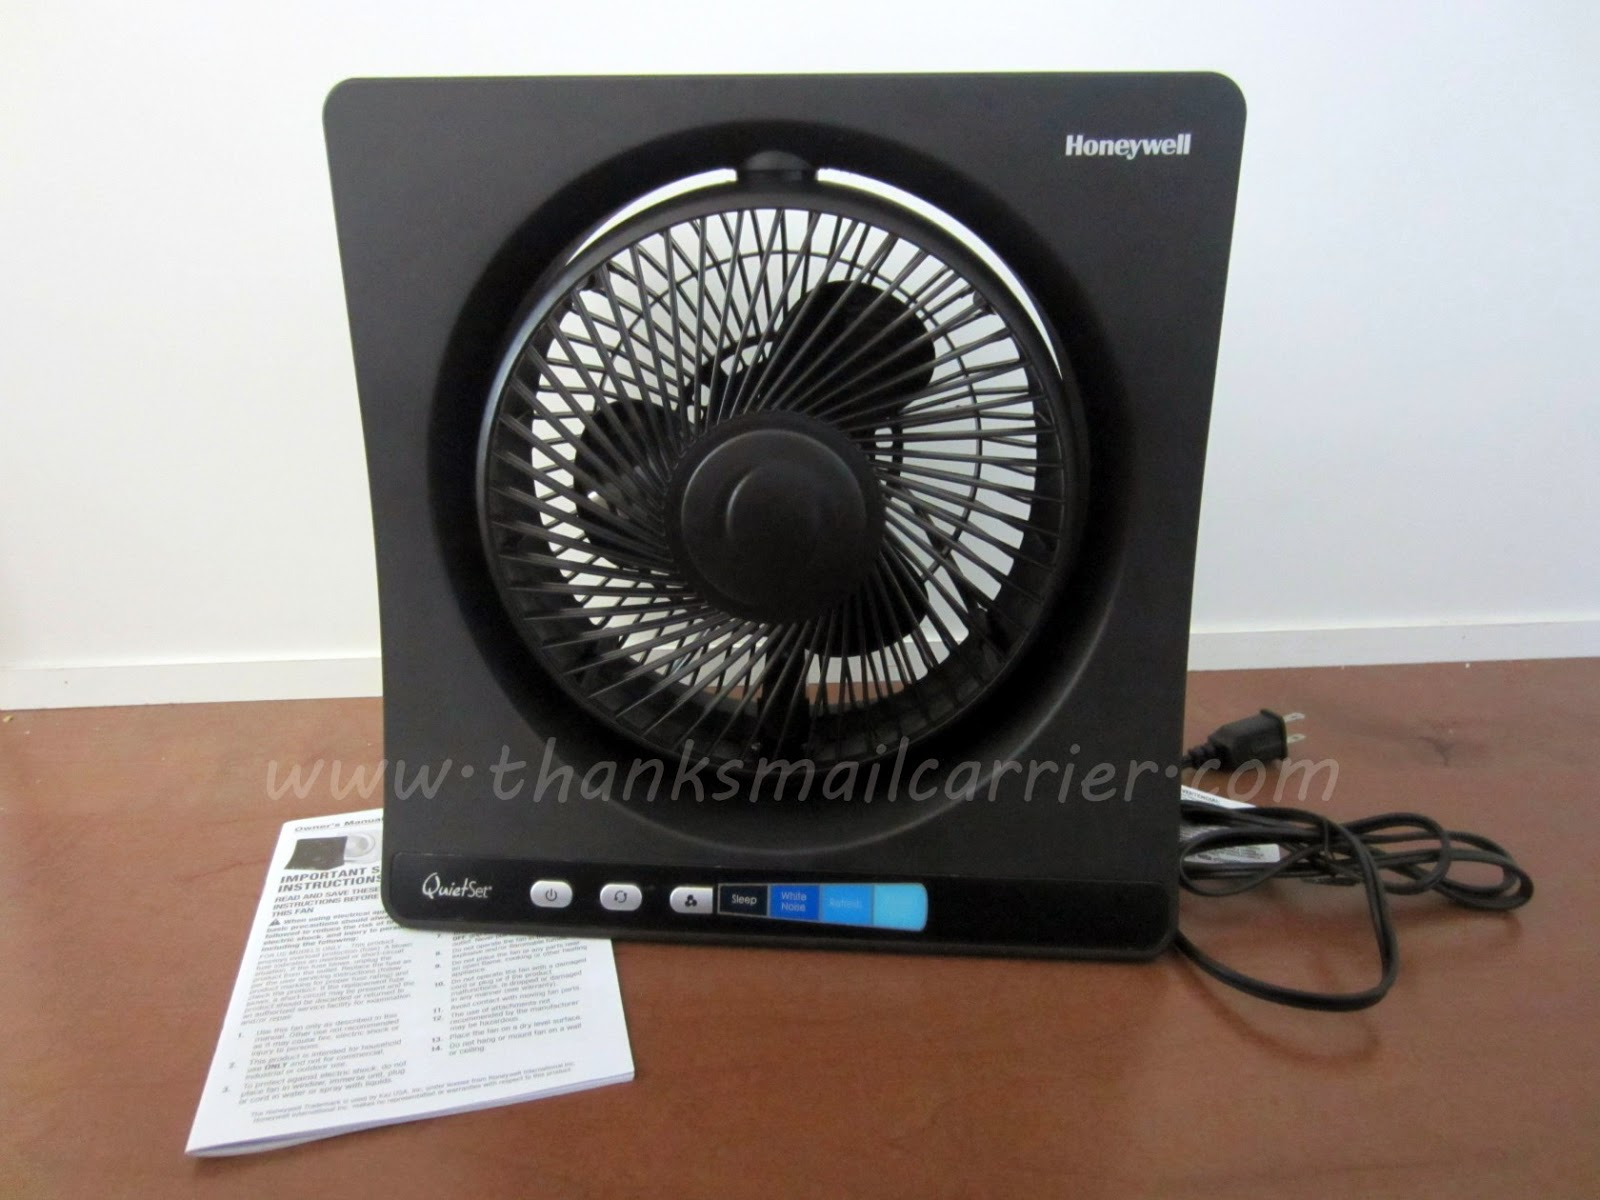 honeywell fan rat dissection diagram test questions thanks mail carrier cool off with the